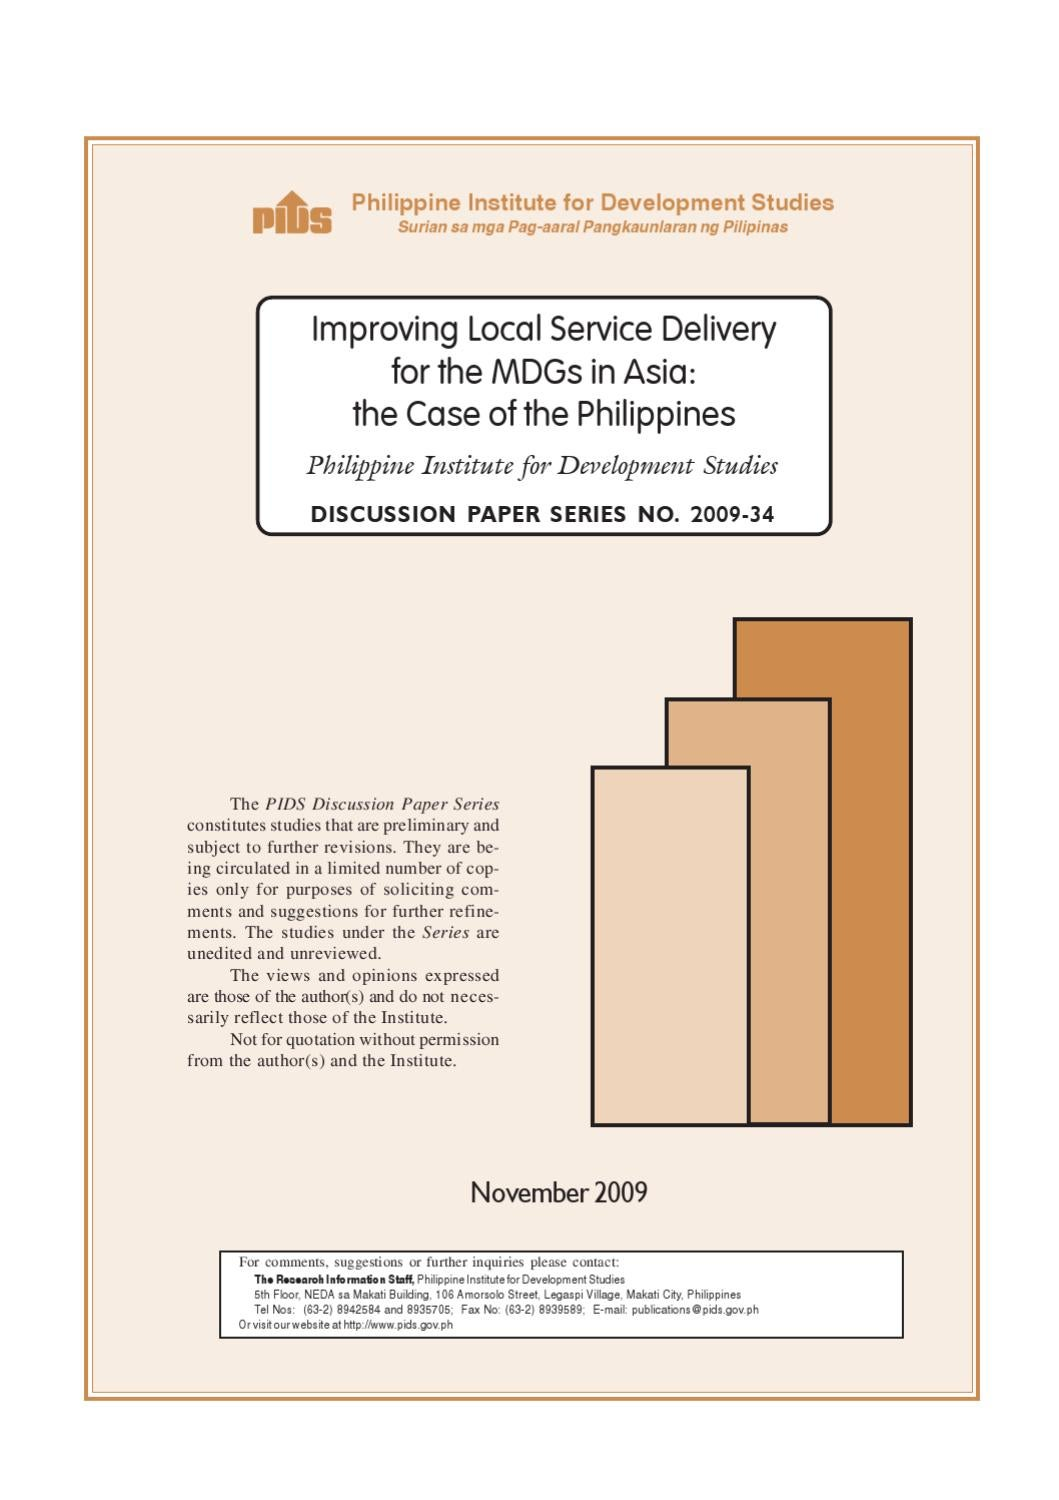 Improving Local Service Delivery for the MDGs in Asia: the